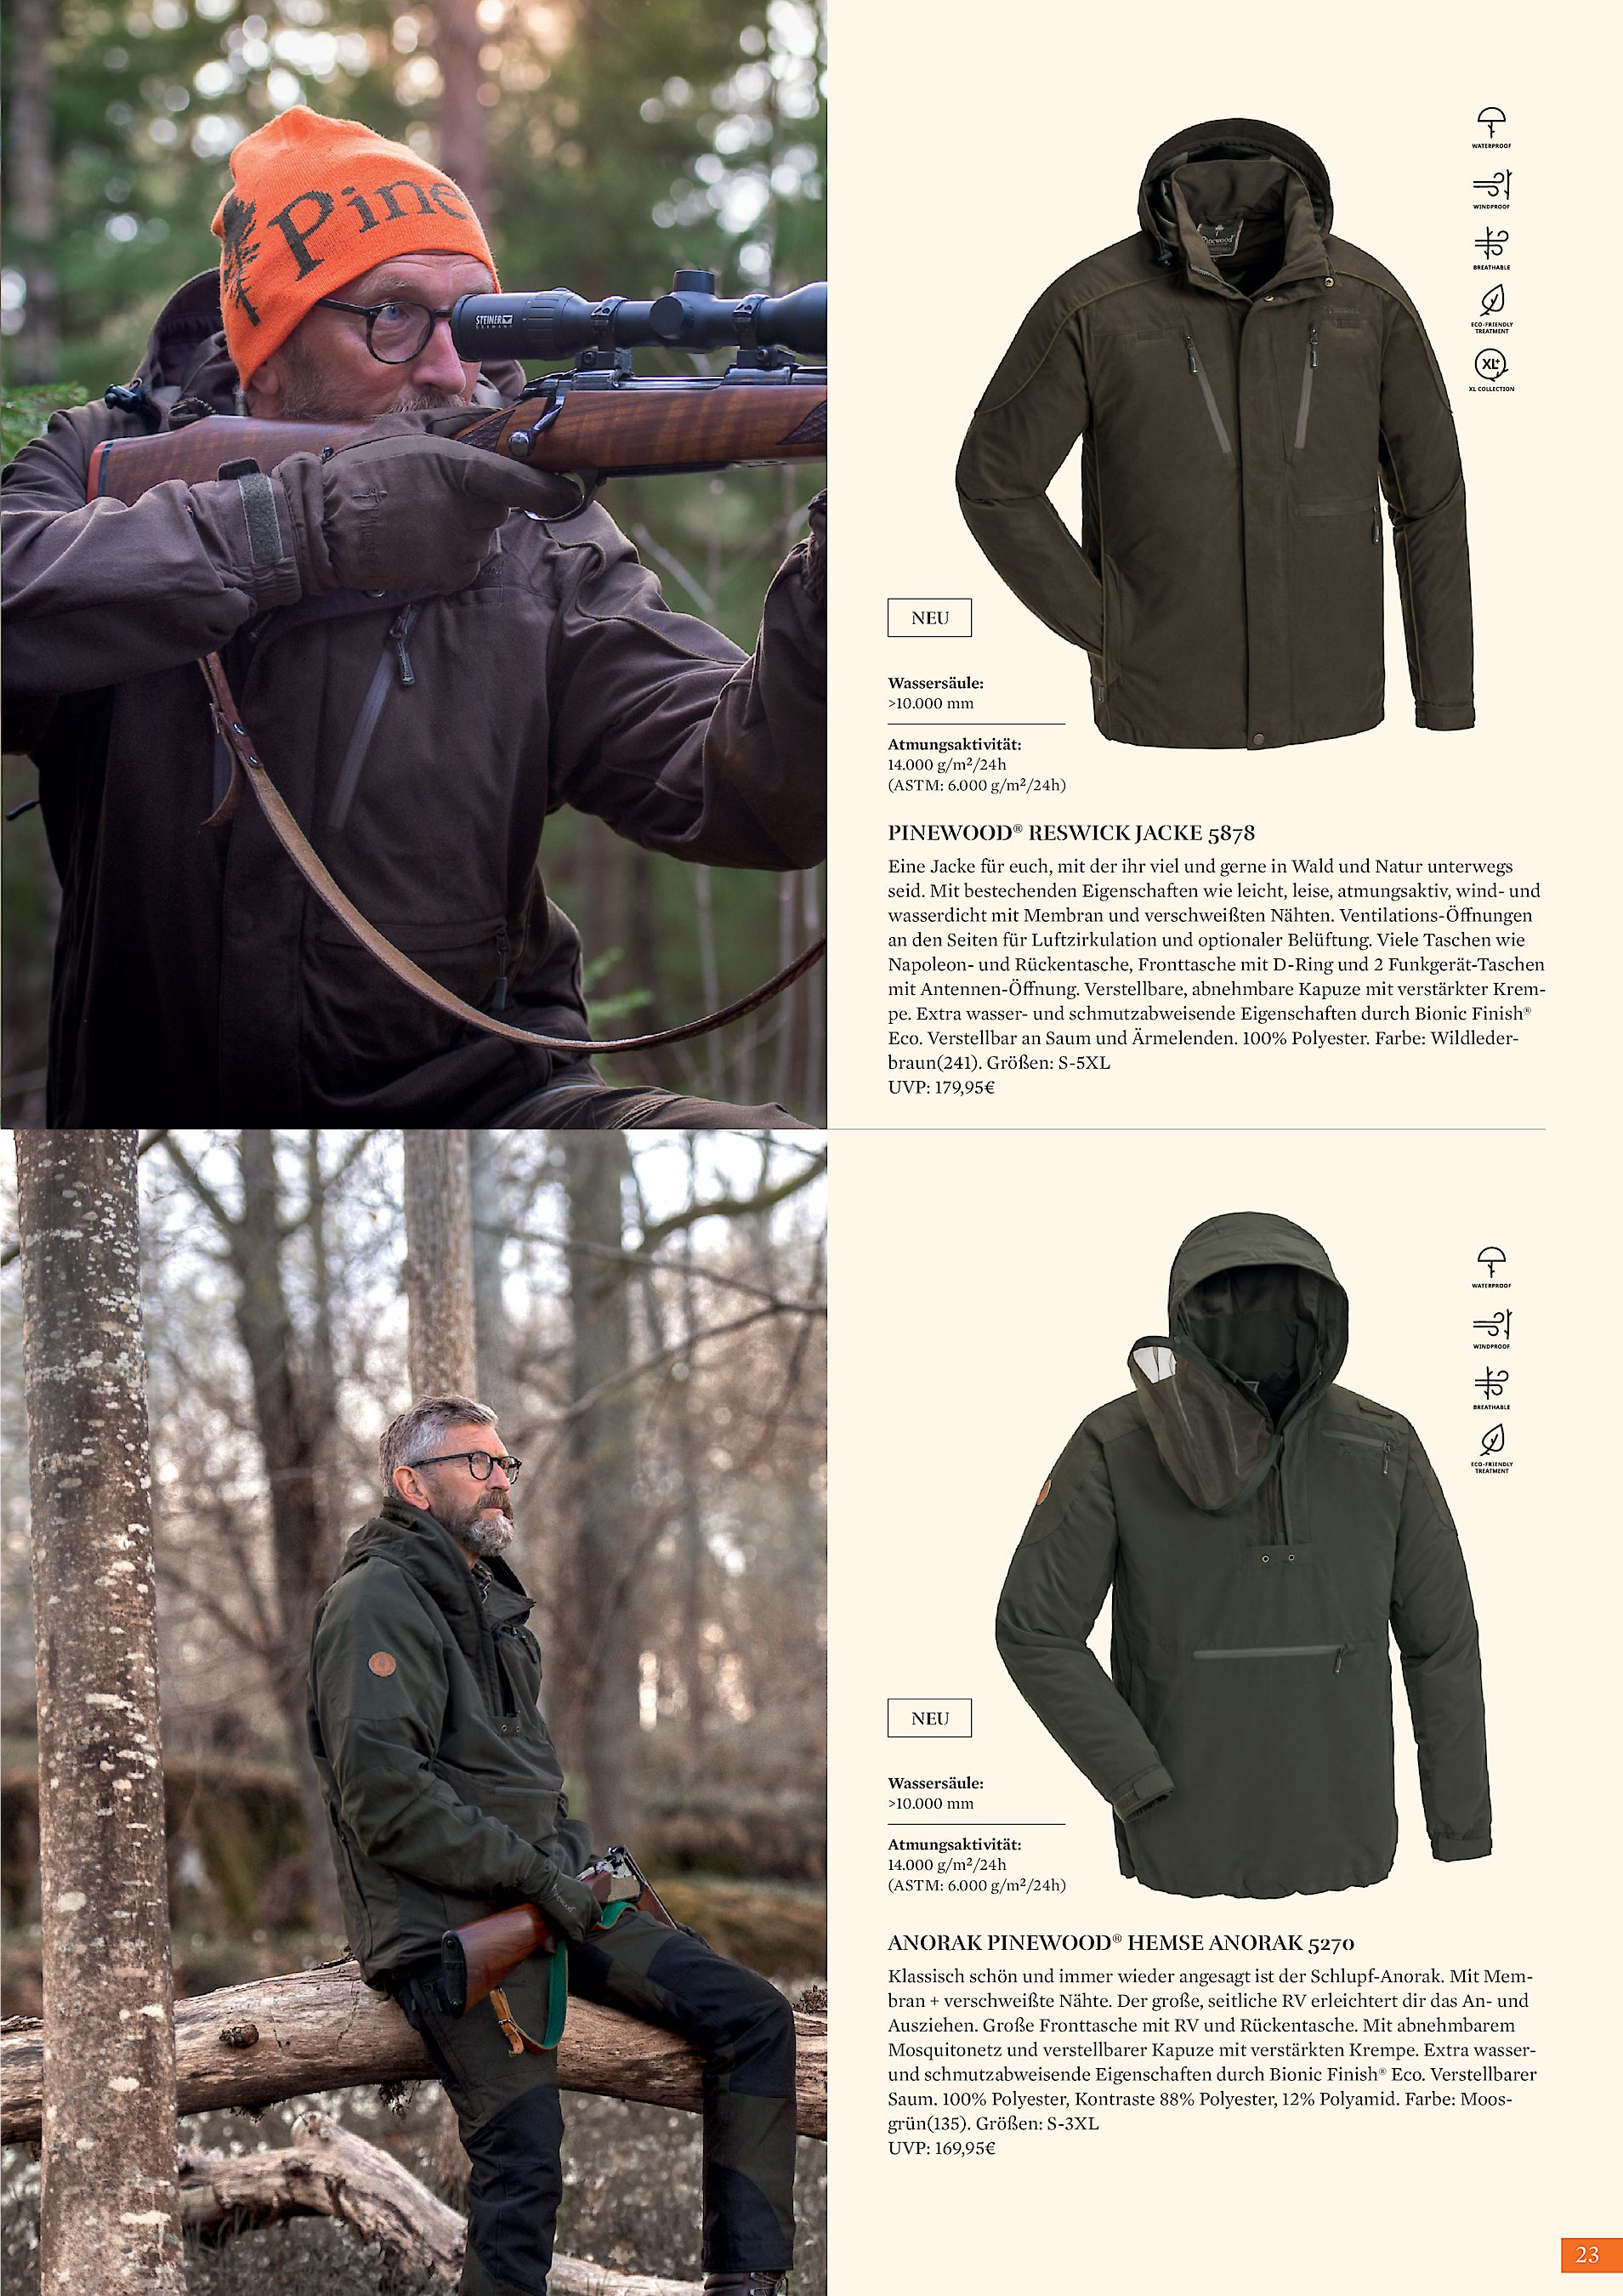 DE - Hunting Hunting AW1819 (endast text) 1d70f22646